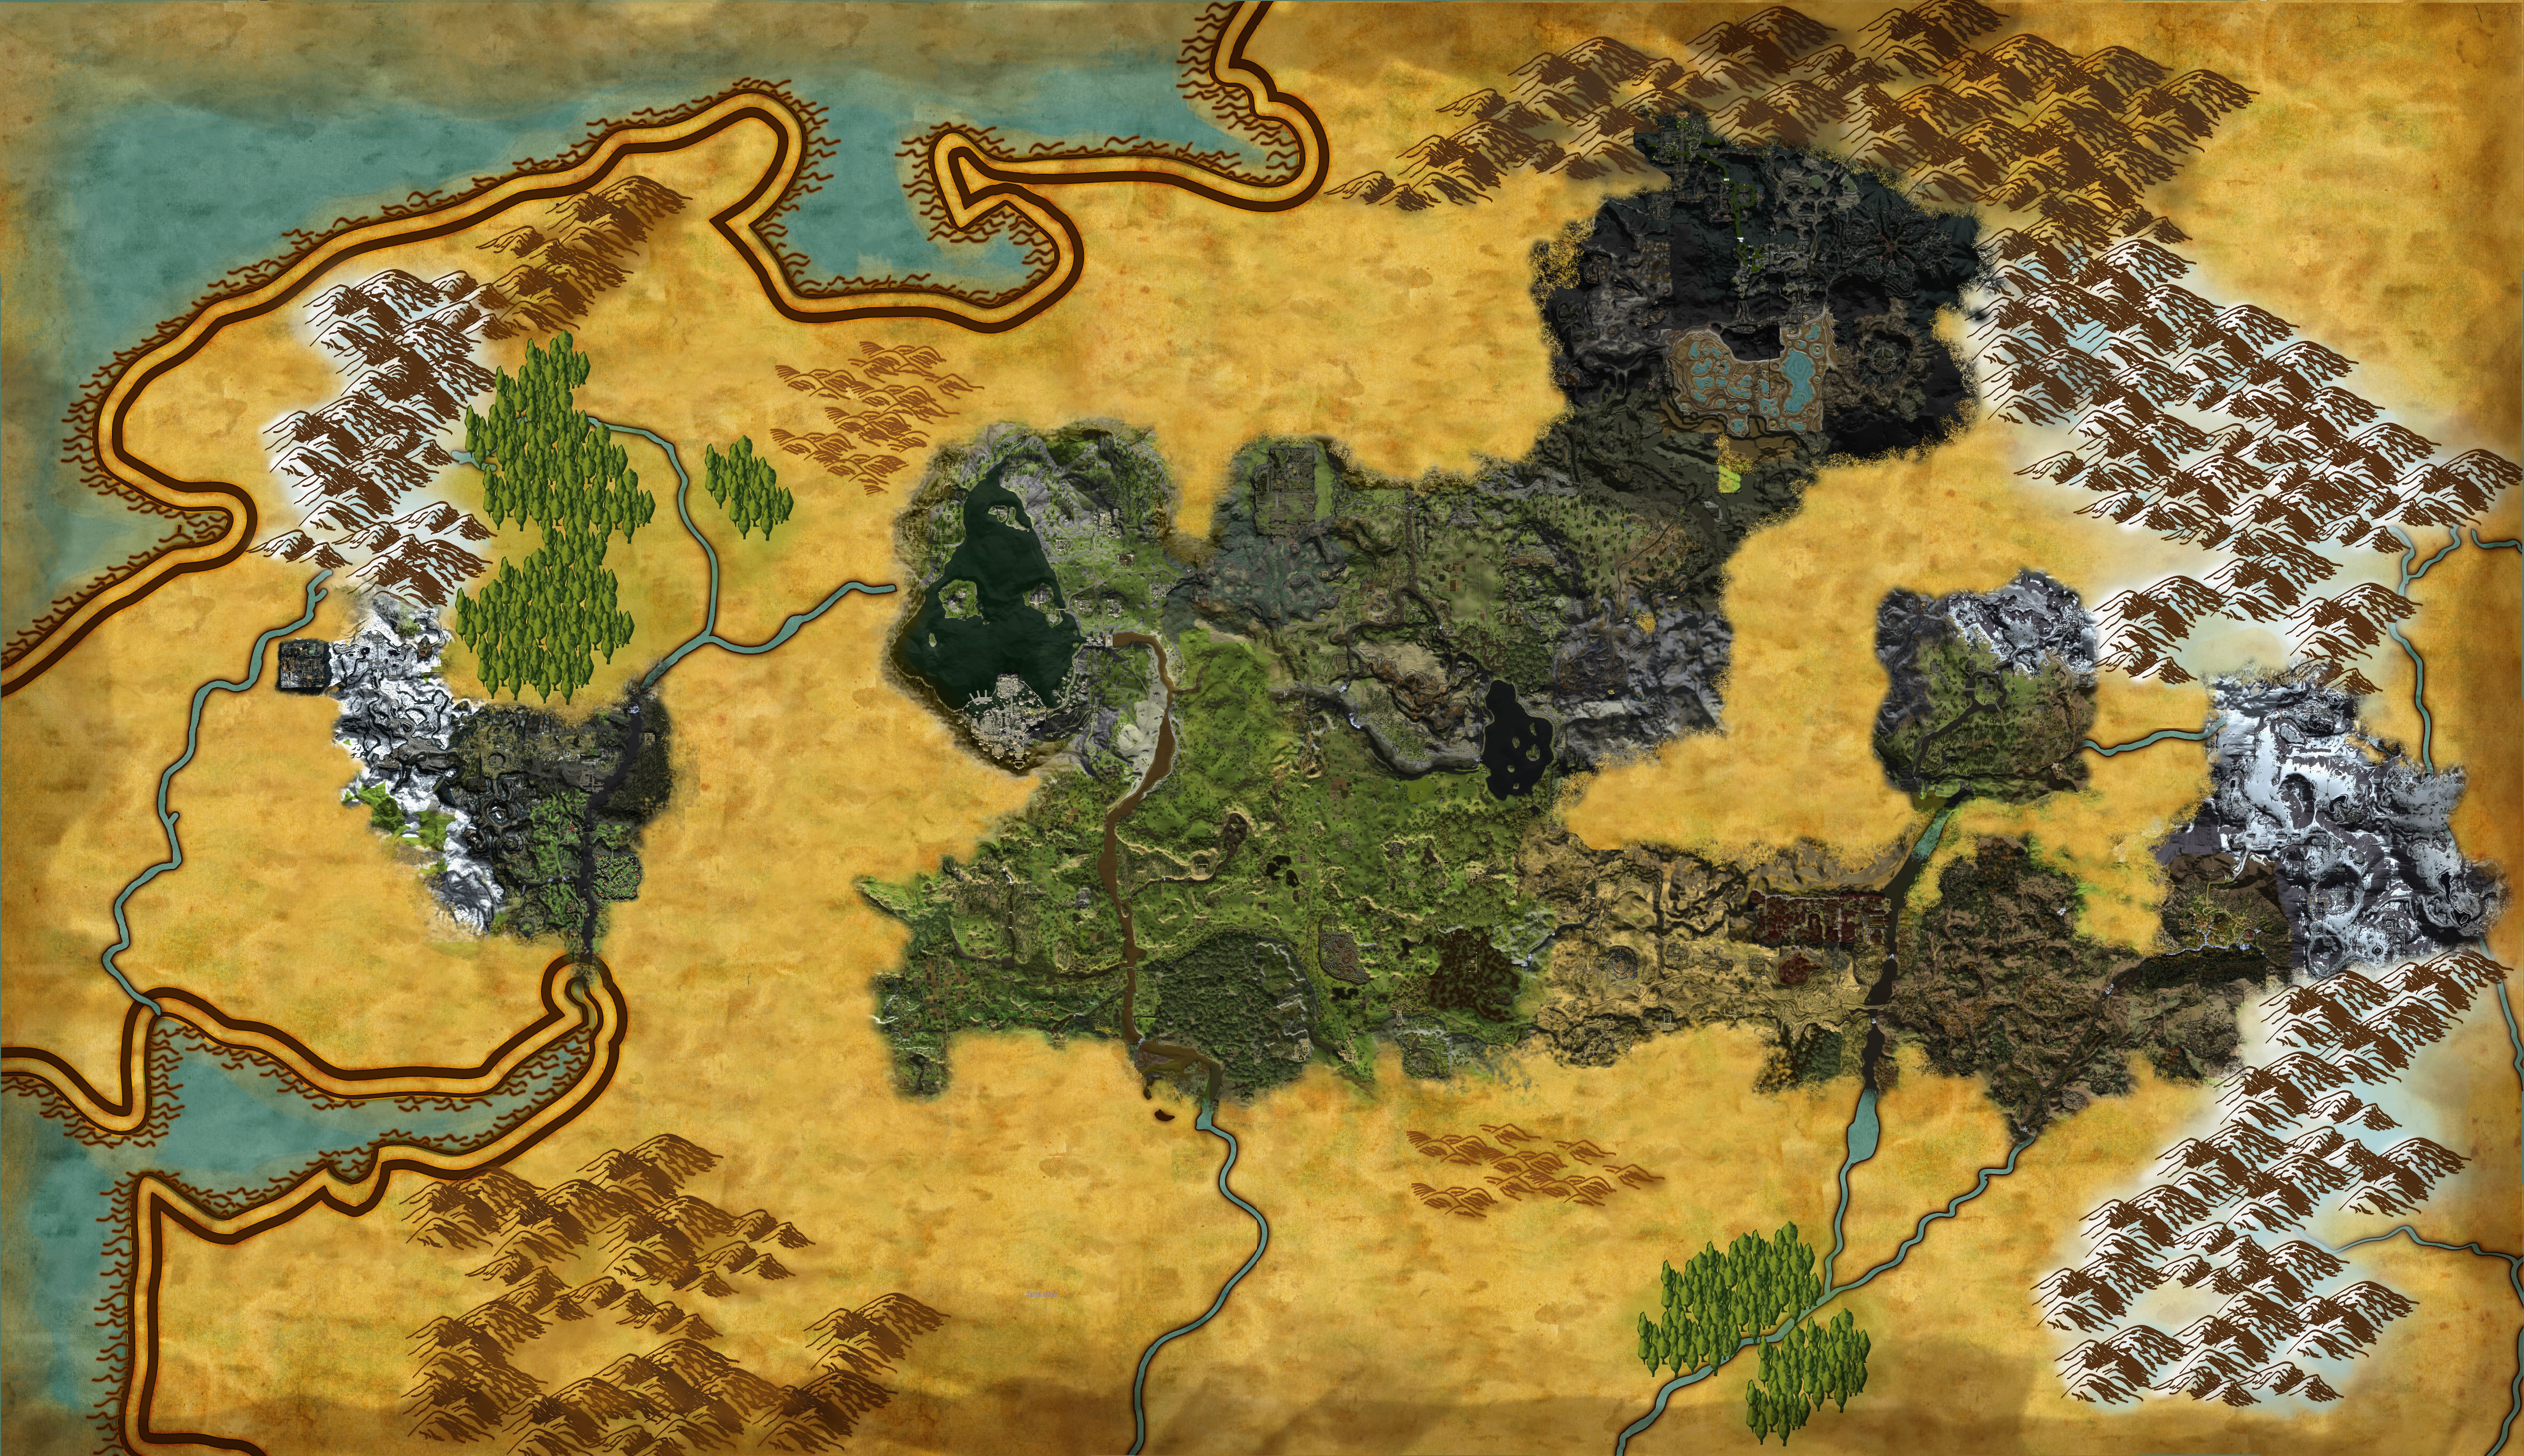 Lord Of The Rings Online World Map.Detailed Lotro Maps Document A Year Of New Content